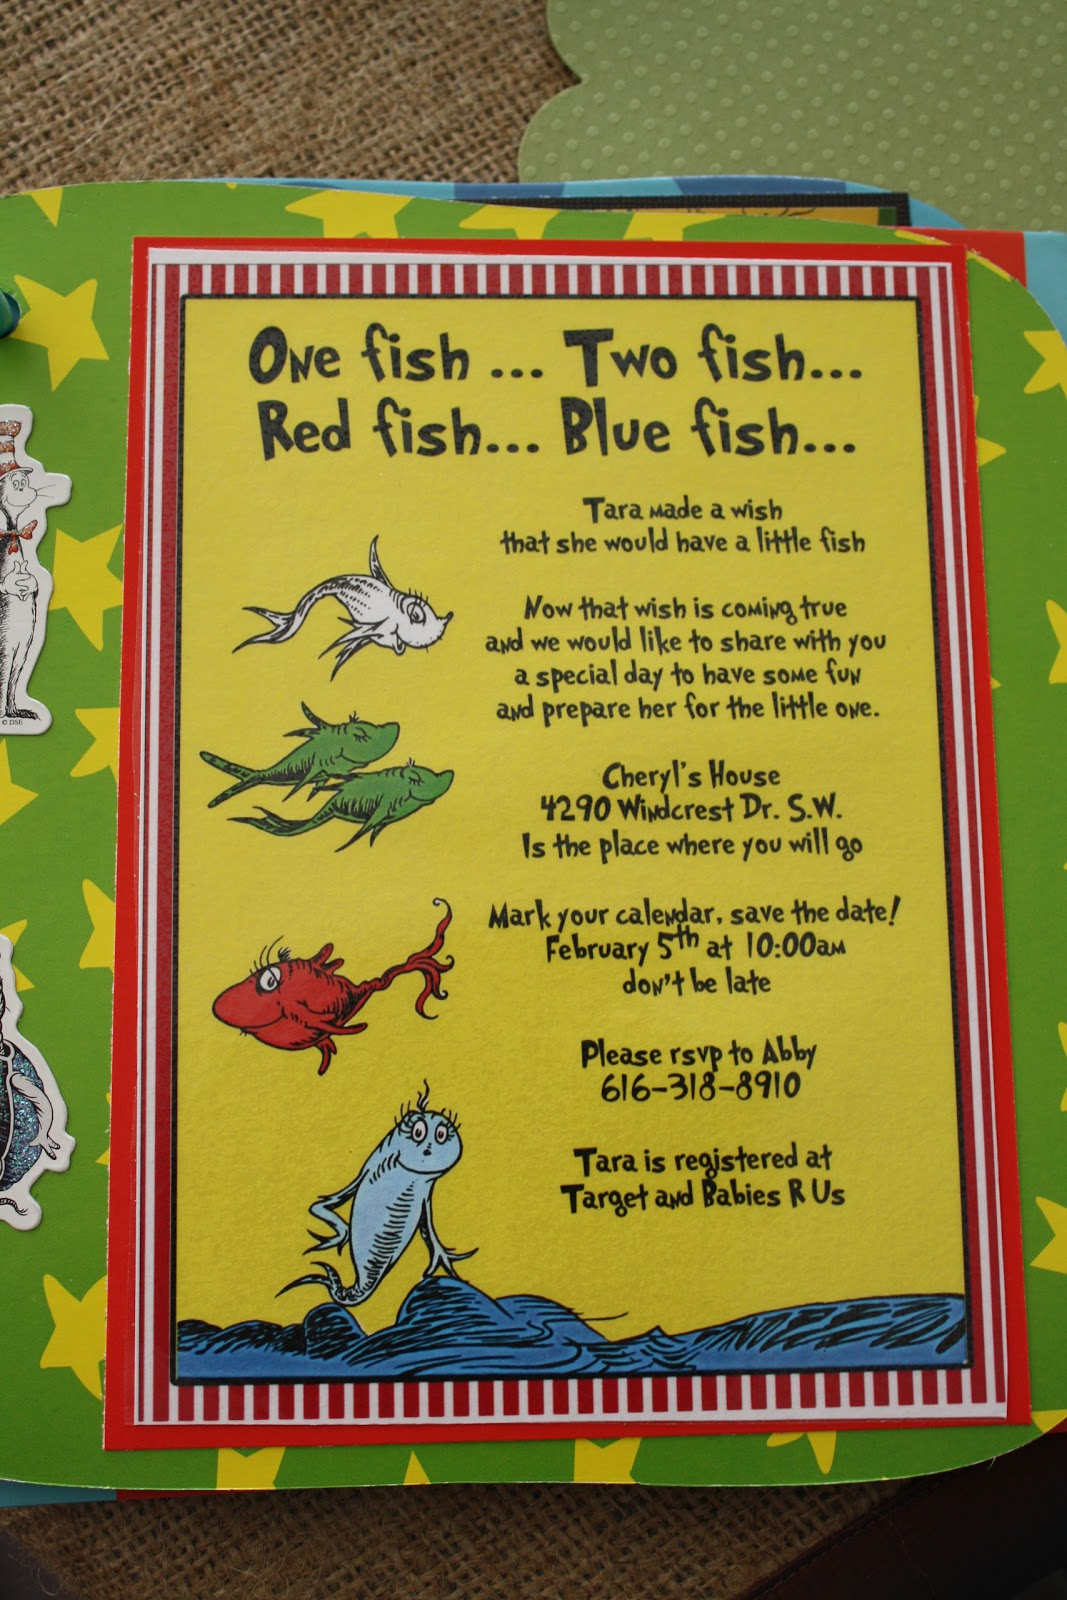 Dr seuss quotes food quotesgram for One fish two fish menu